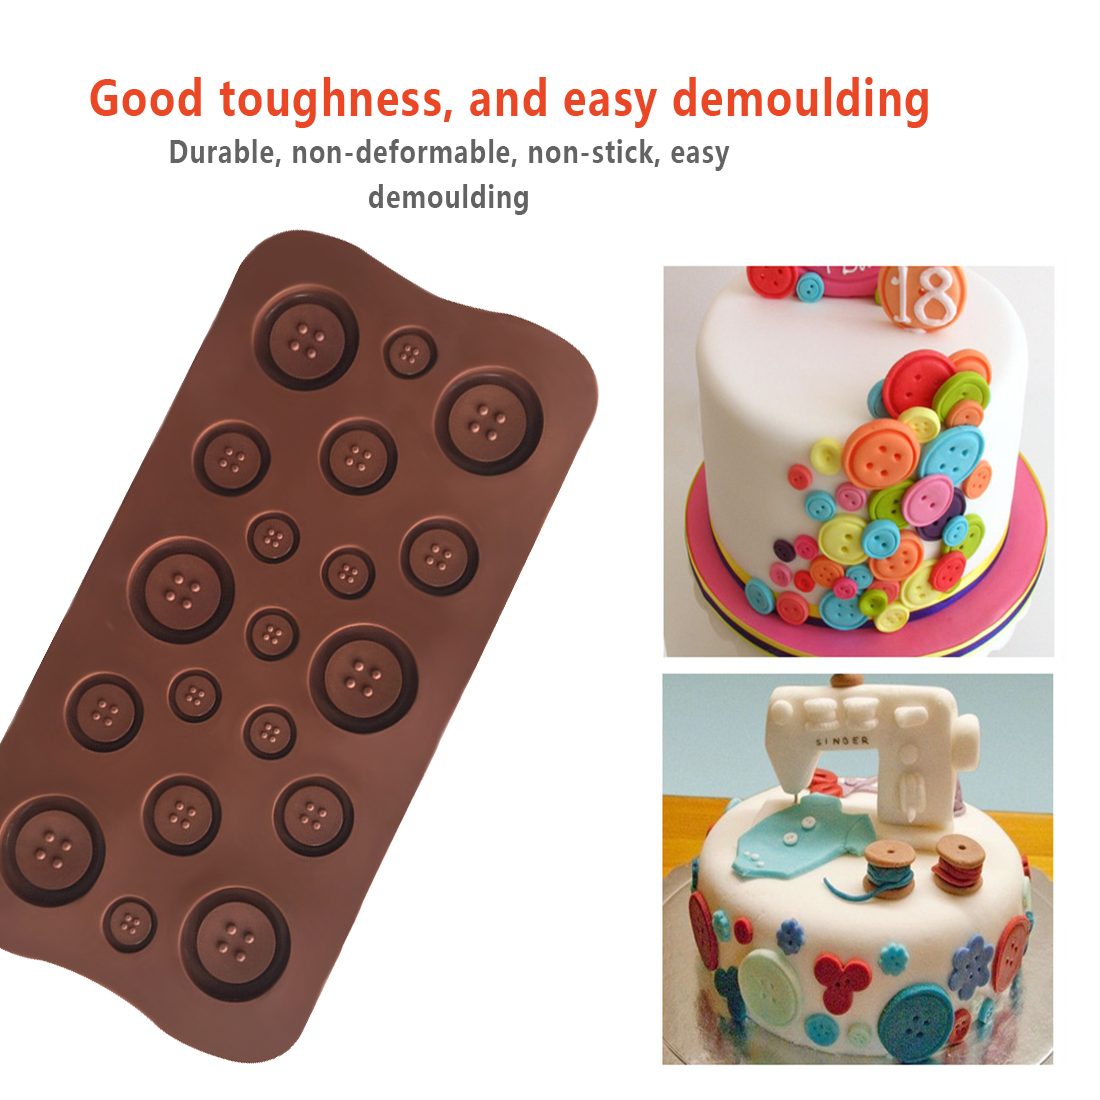 Button Shape Silicone Mold Jelly Soap Chocolate Mould DIY Baking Cake Decorating Tools Kitchen Accessories Bakeware